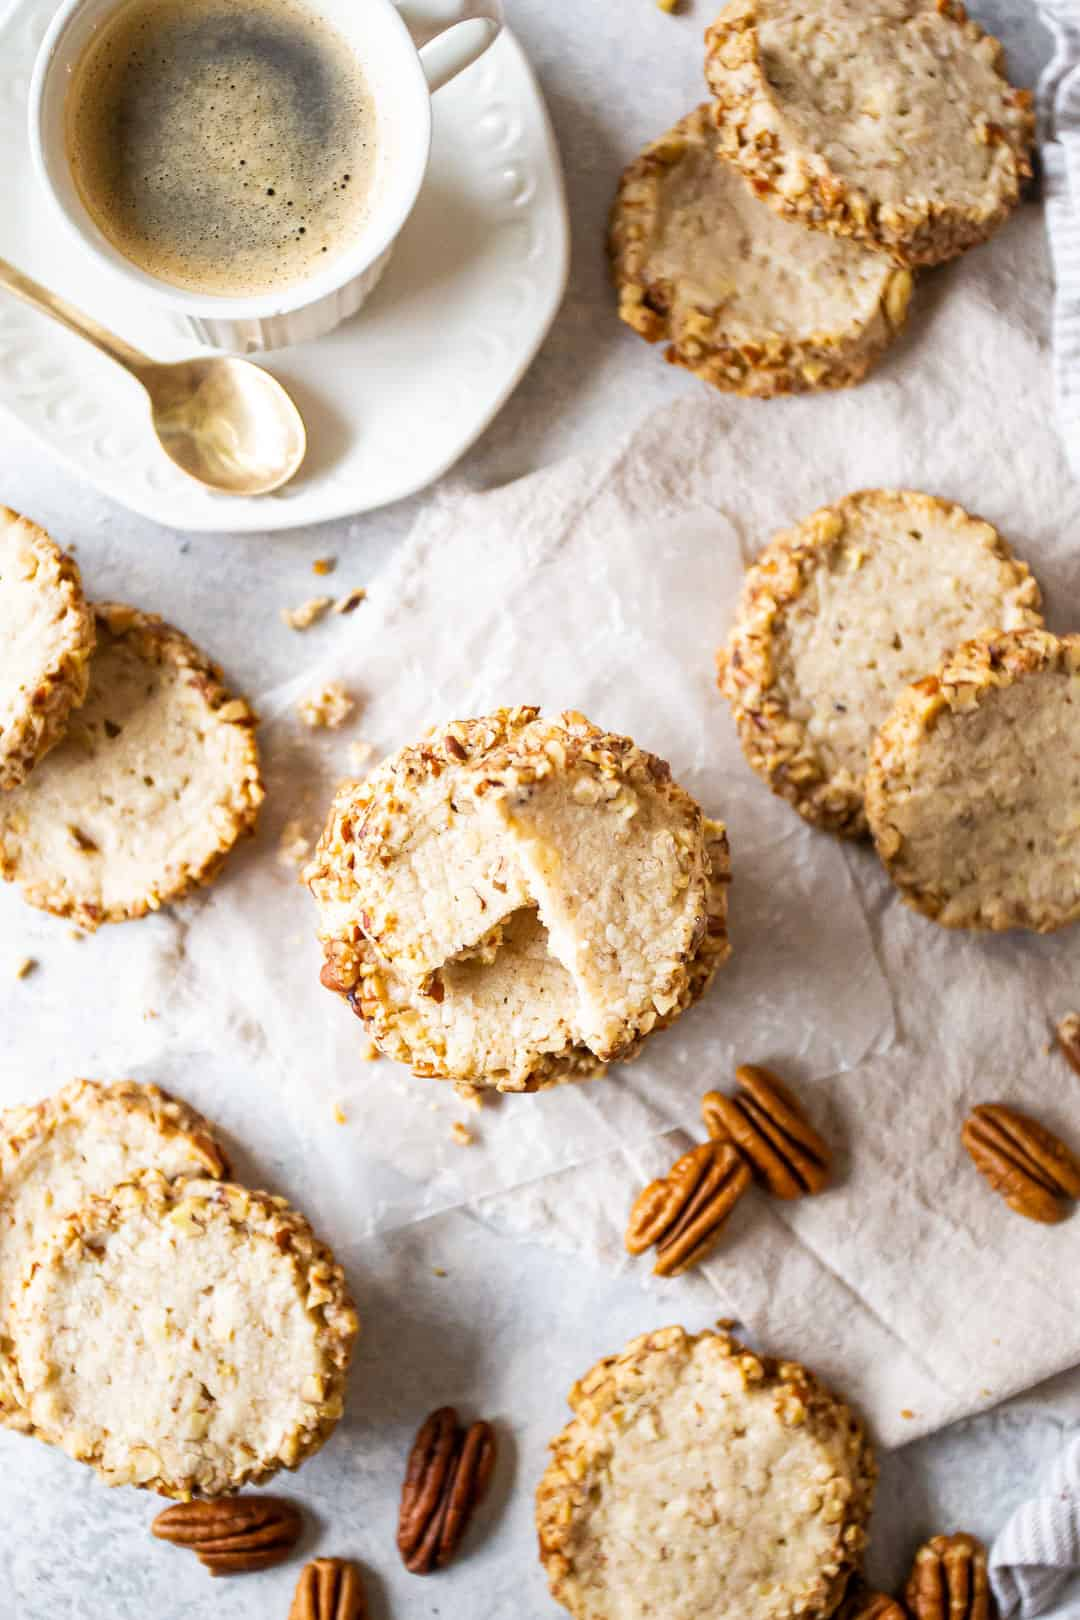 Overhead image of homemade pecan sandies cookies stacked and scattered with pecans and a cup of espresso.